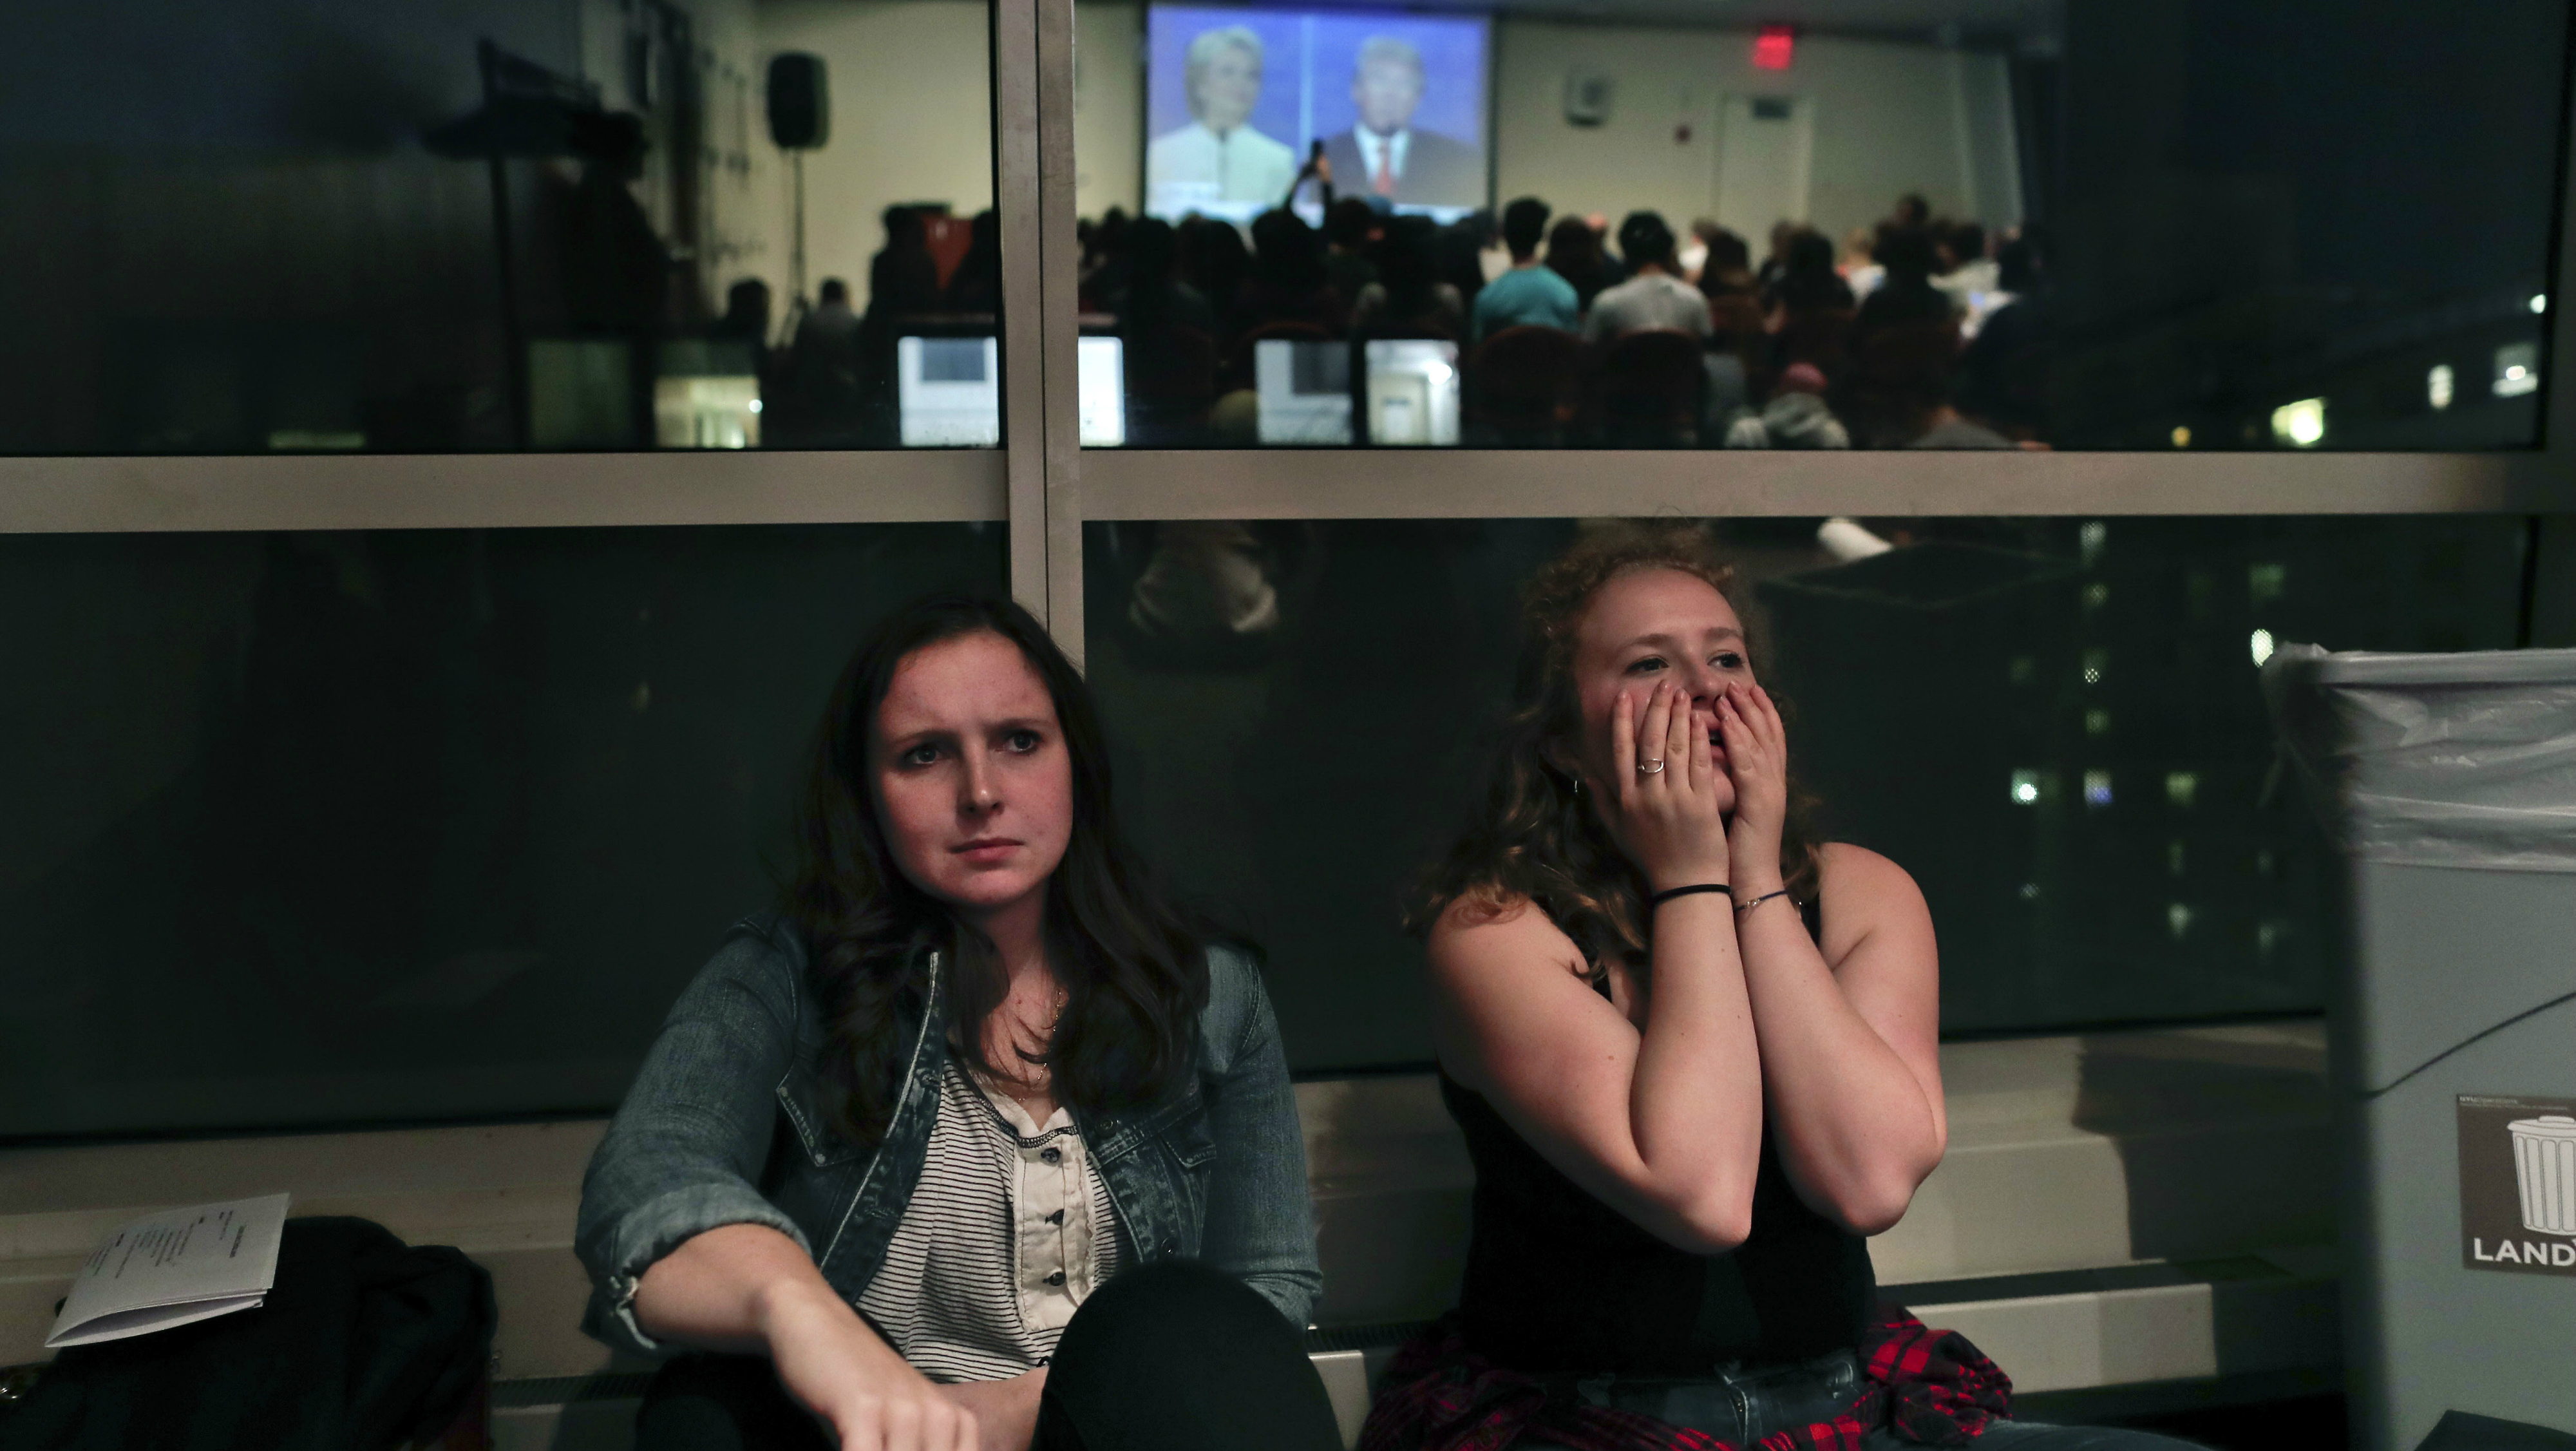 NYU students react while watching the presidential debate between Democratic candidate Hillary Clinton and Republican candidate Donald Trump during a debate watch gathering, Wednesday, Oct. 19, 2016, in New York. (AP Photo/Julie Jacobson